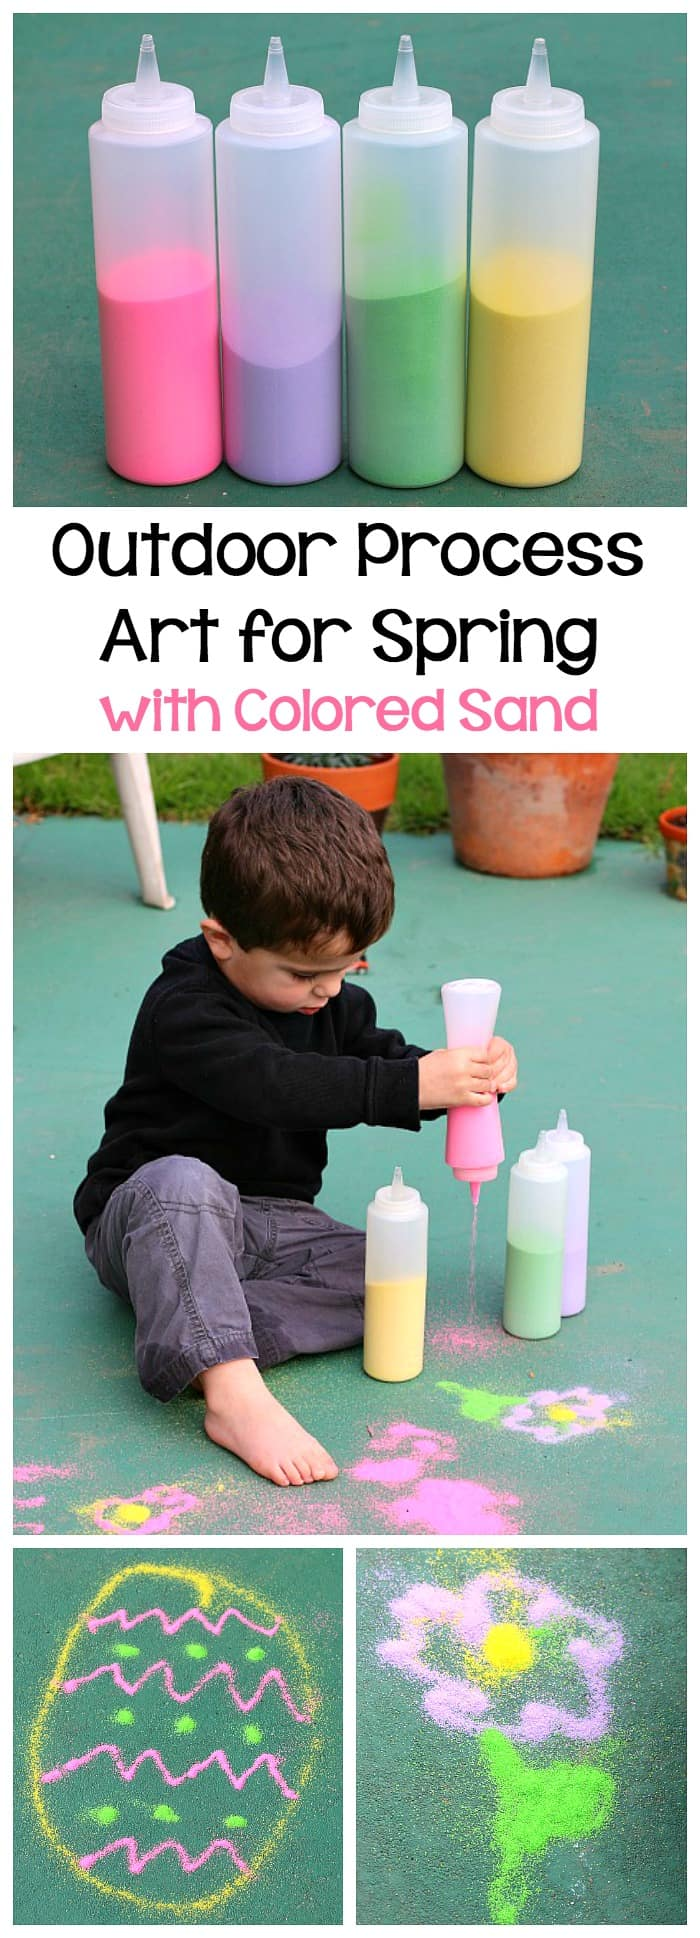 spring activities for kids drawing outside with spring colored sand